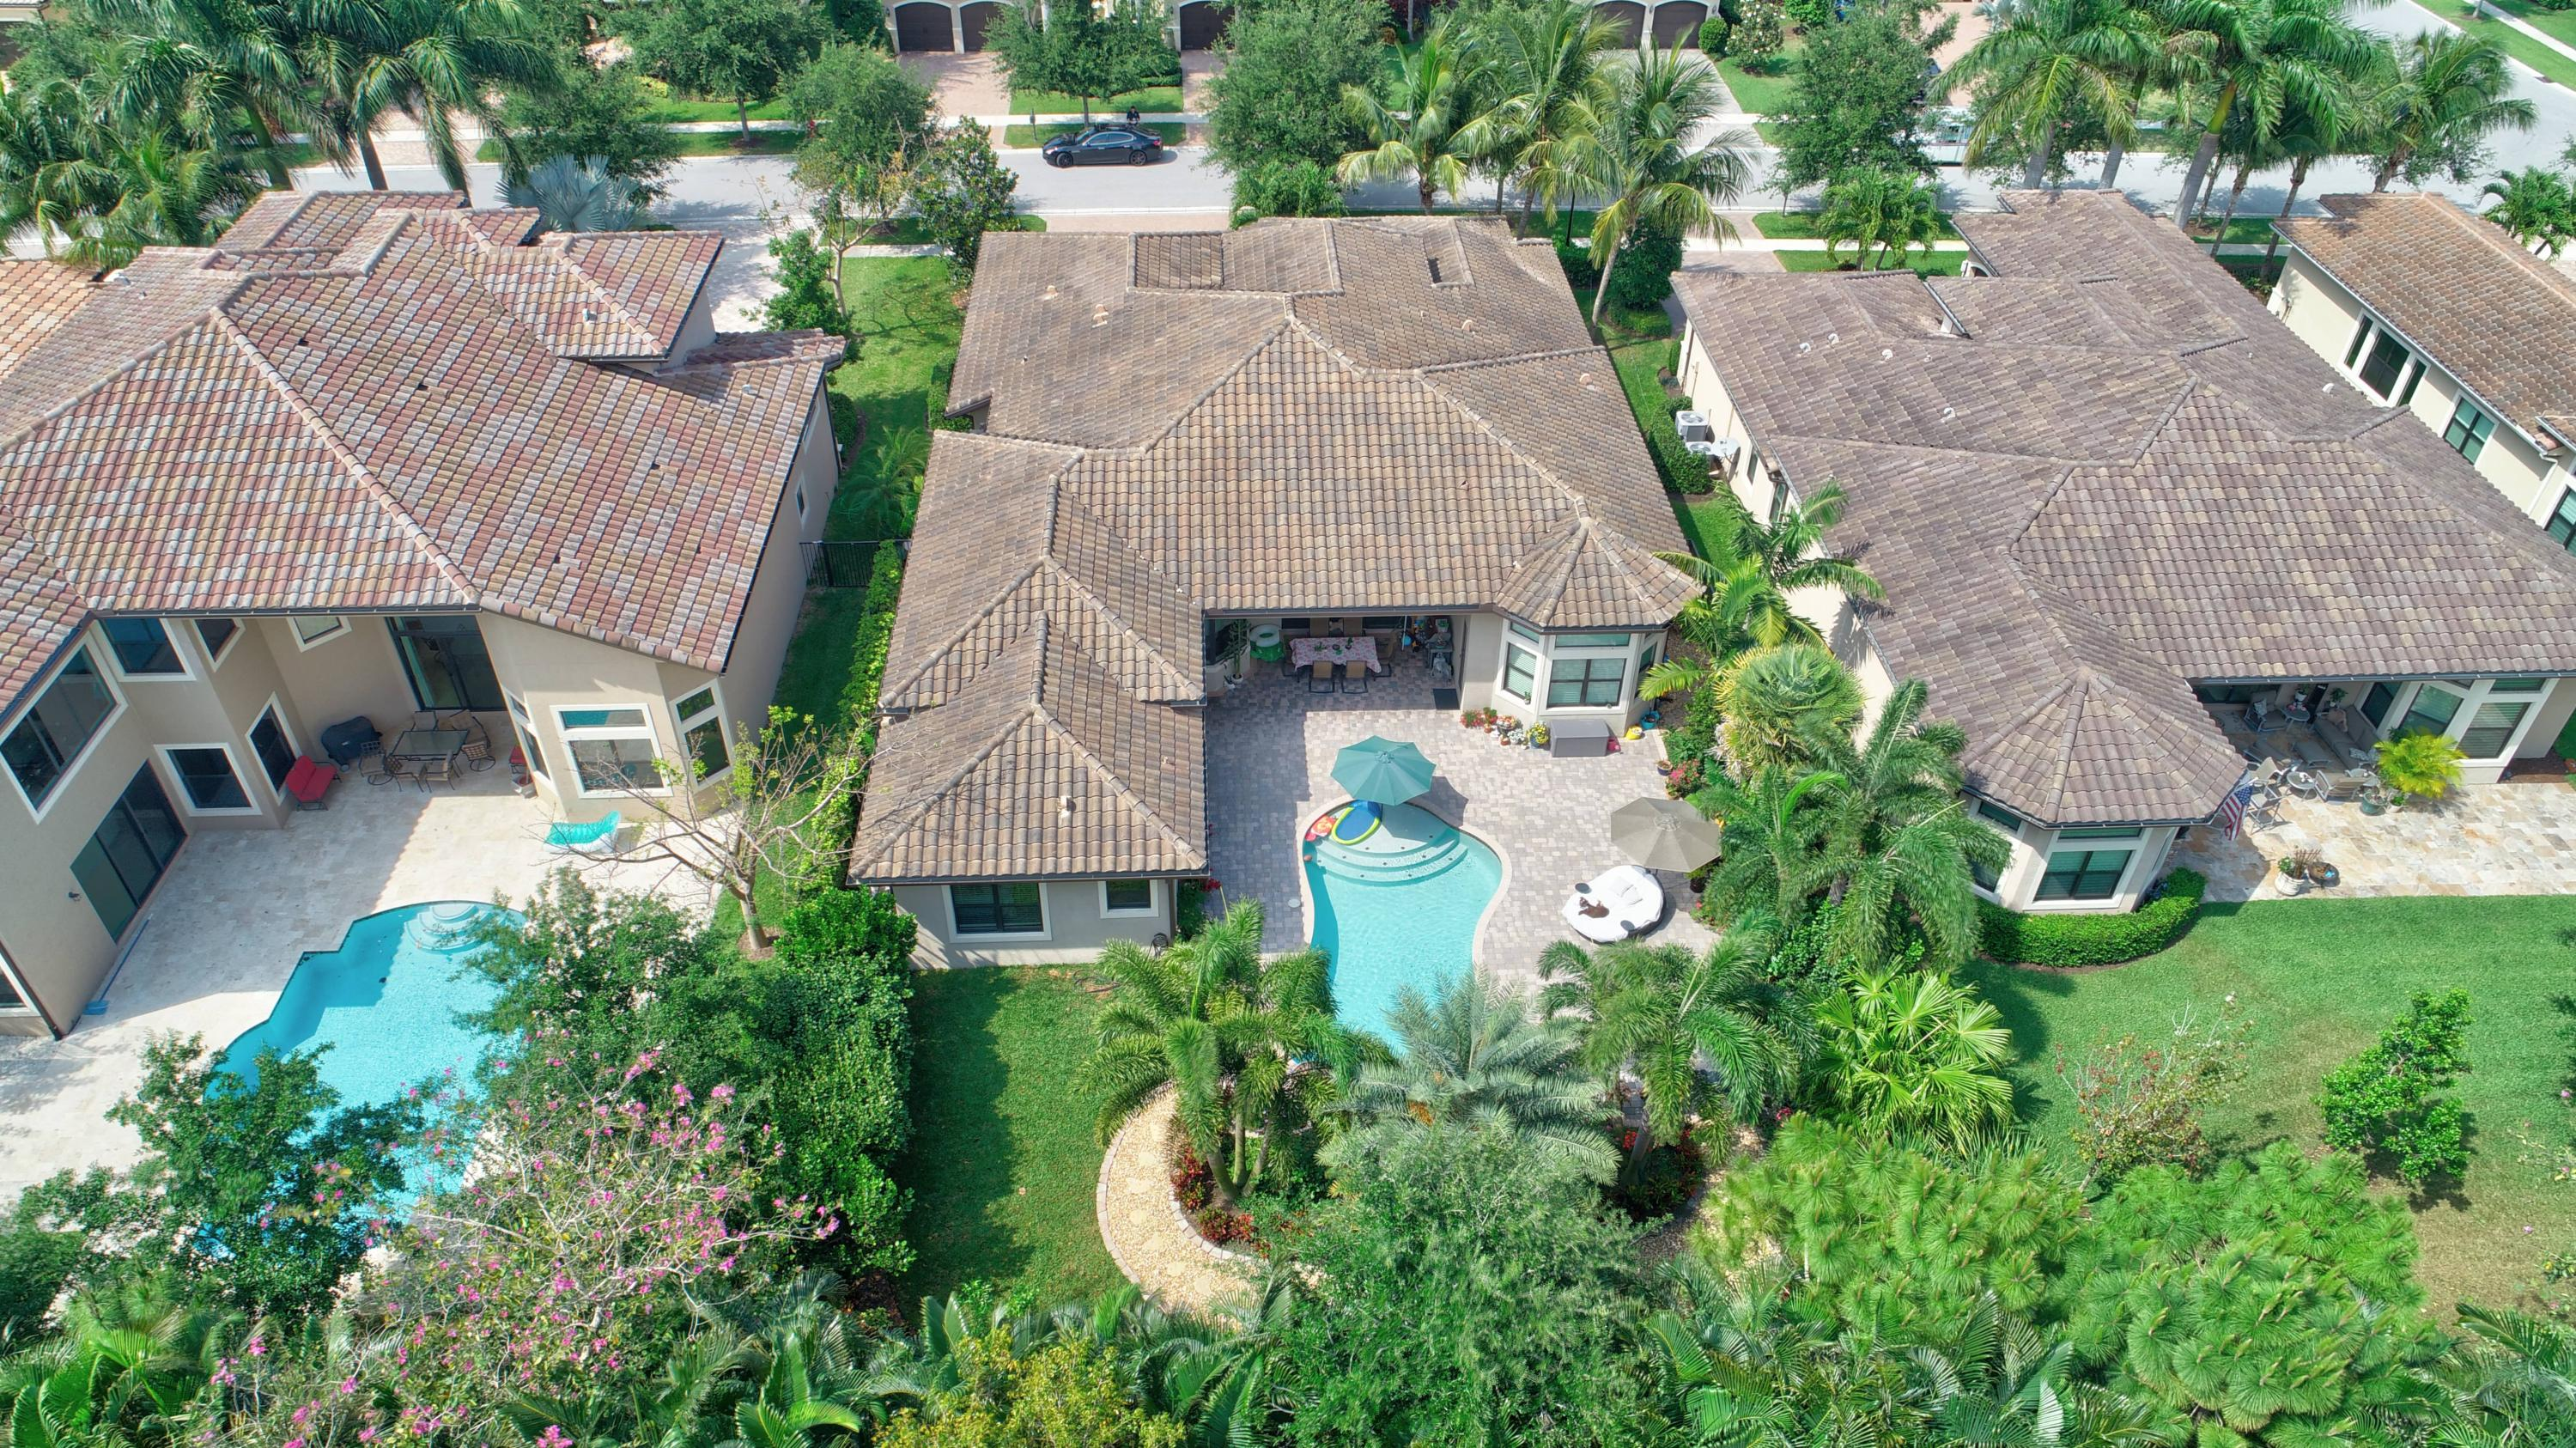 BAYSIDE HOMES FOR SALE